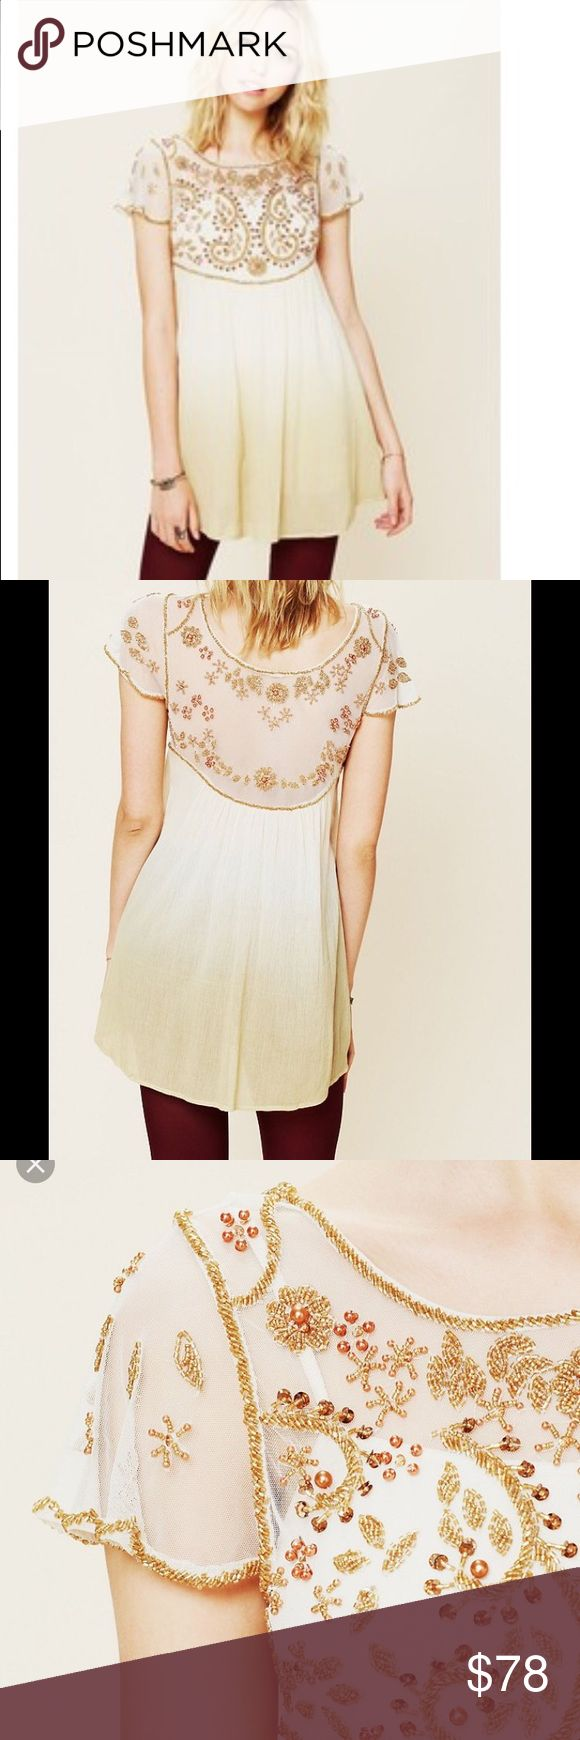 Free People Tunic Beautiful beading, golden beige color. Only worn once, like new condition. All beads intact. Purchased from Free People store. Free People Dresses